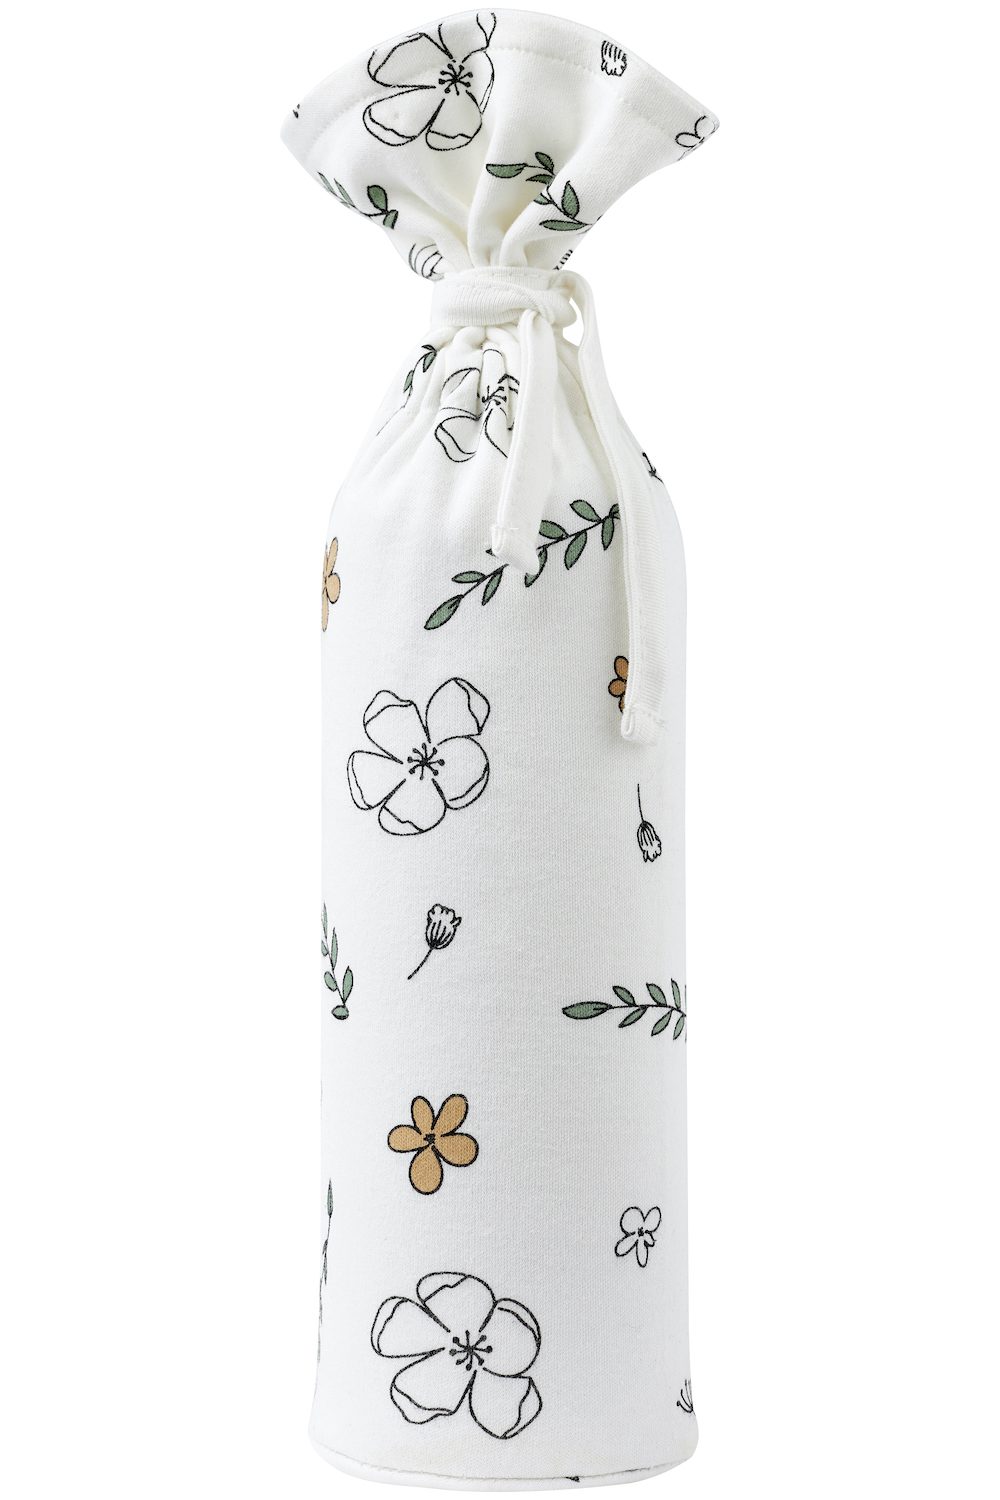 Organic pitcher bag Floral -13x35cm